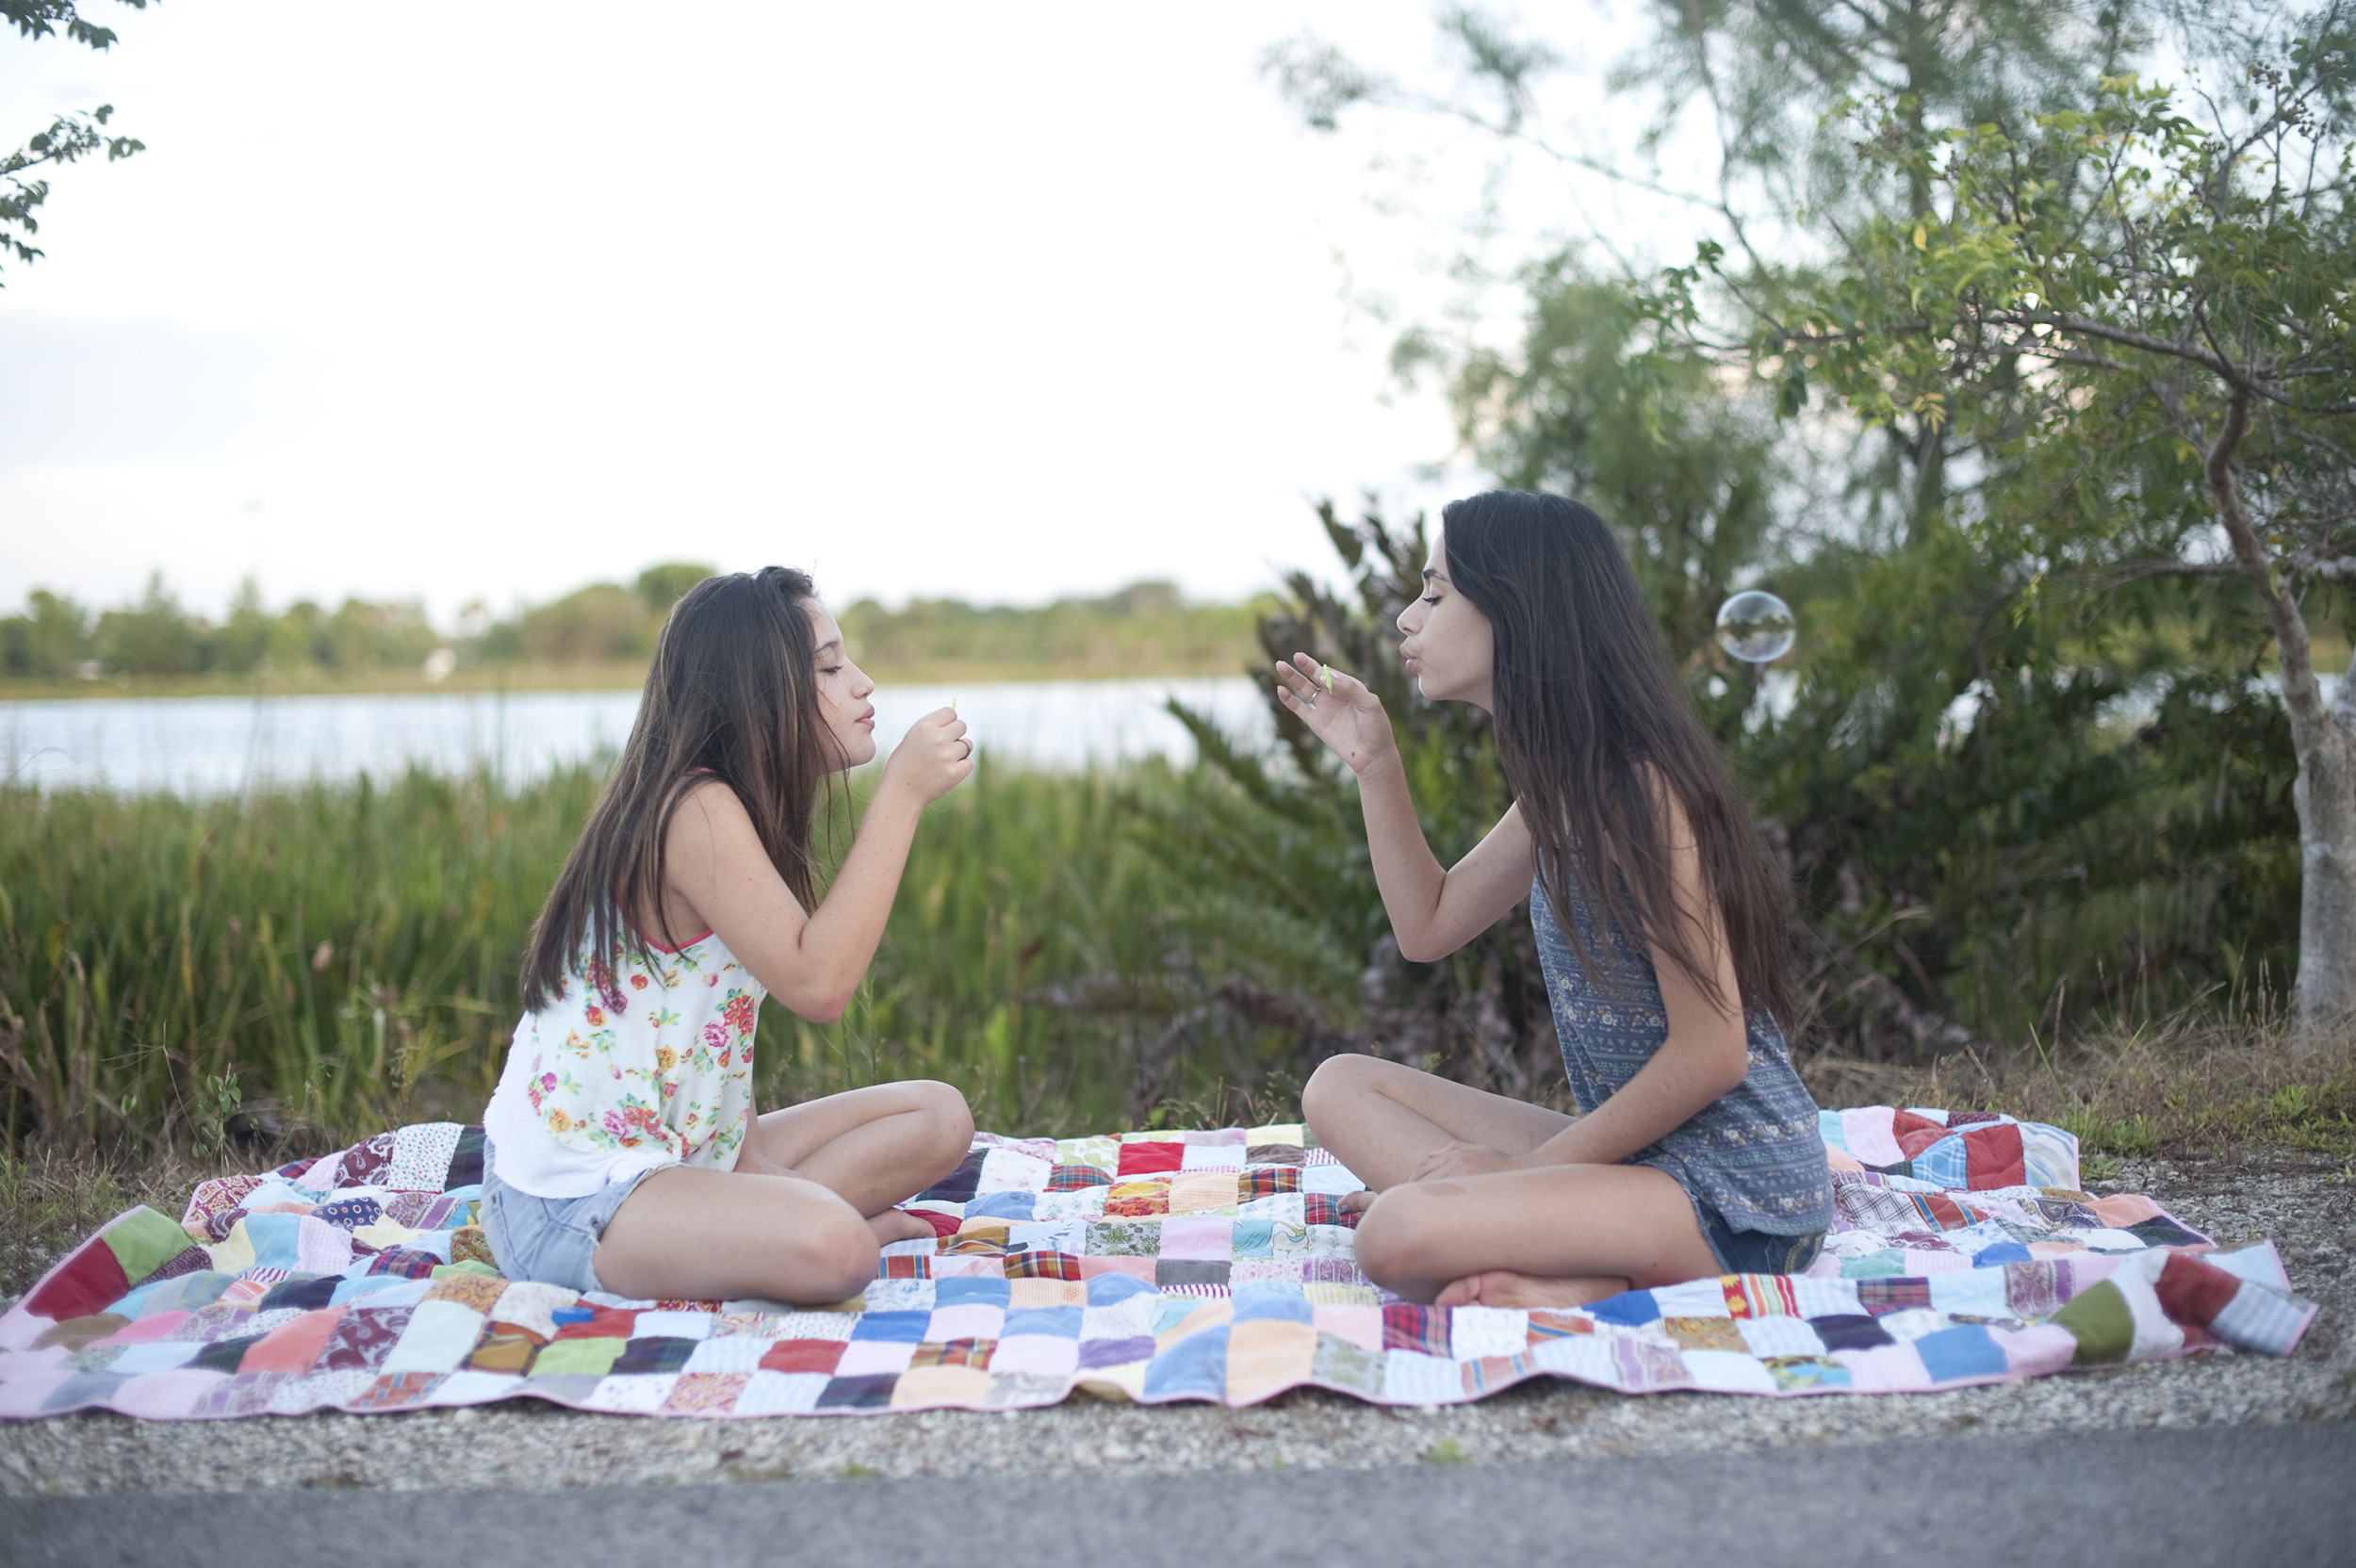 teens-tweens-teenagers-photography-south-florida-alison-frank-photography_03.jpg